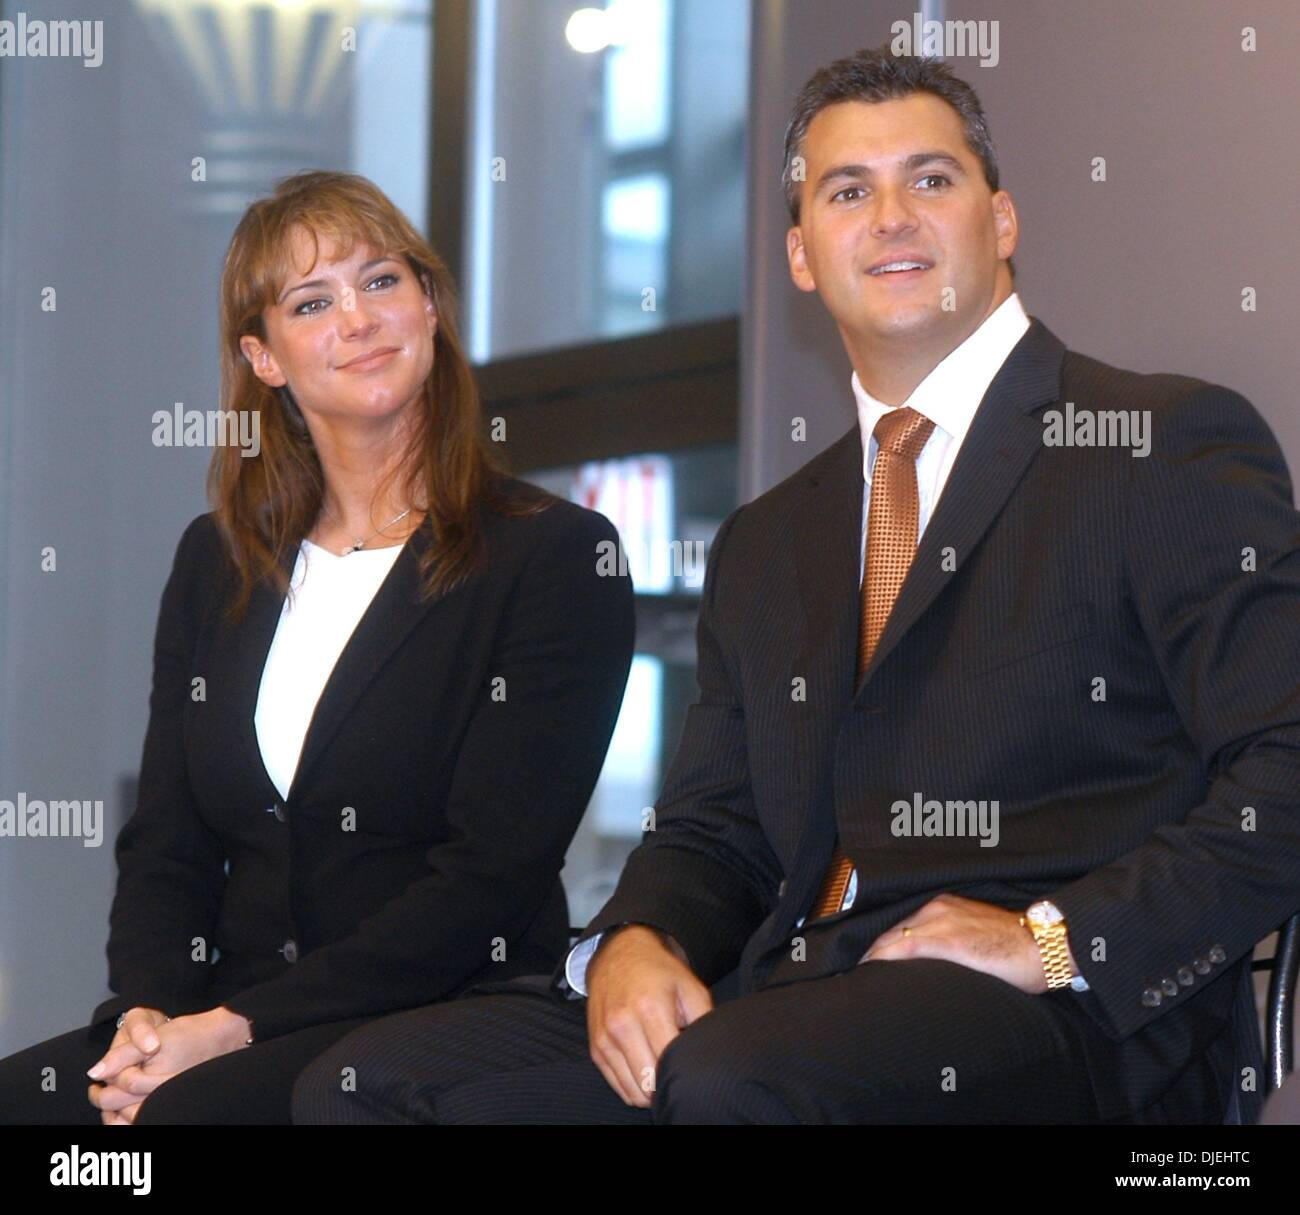 Sep 17, 2003 - New York, New York, USA - STEPHANIE MCMAHON, left, and SHANE MCMAHON, daughter and son of WWE wrestling - Stock Image